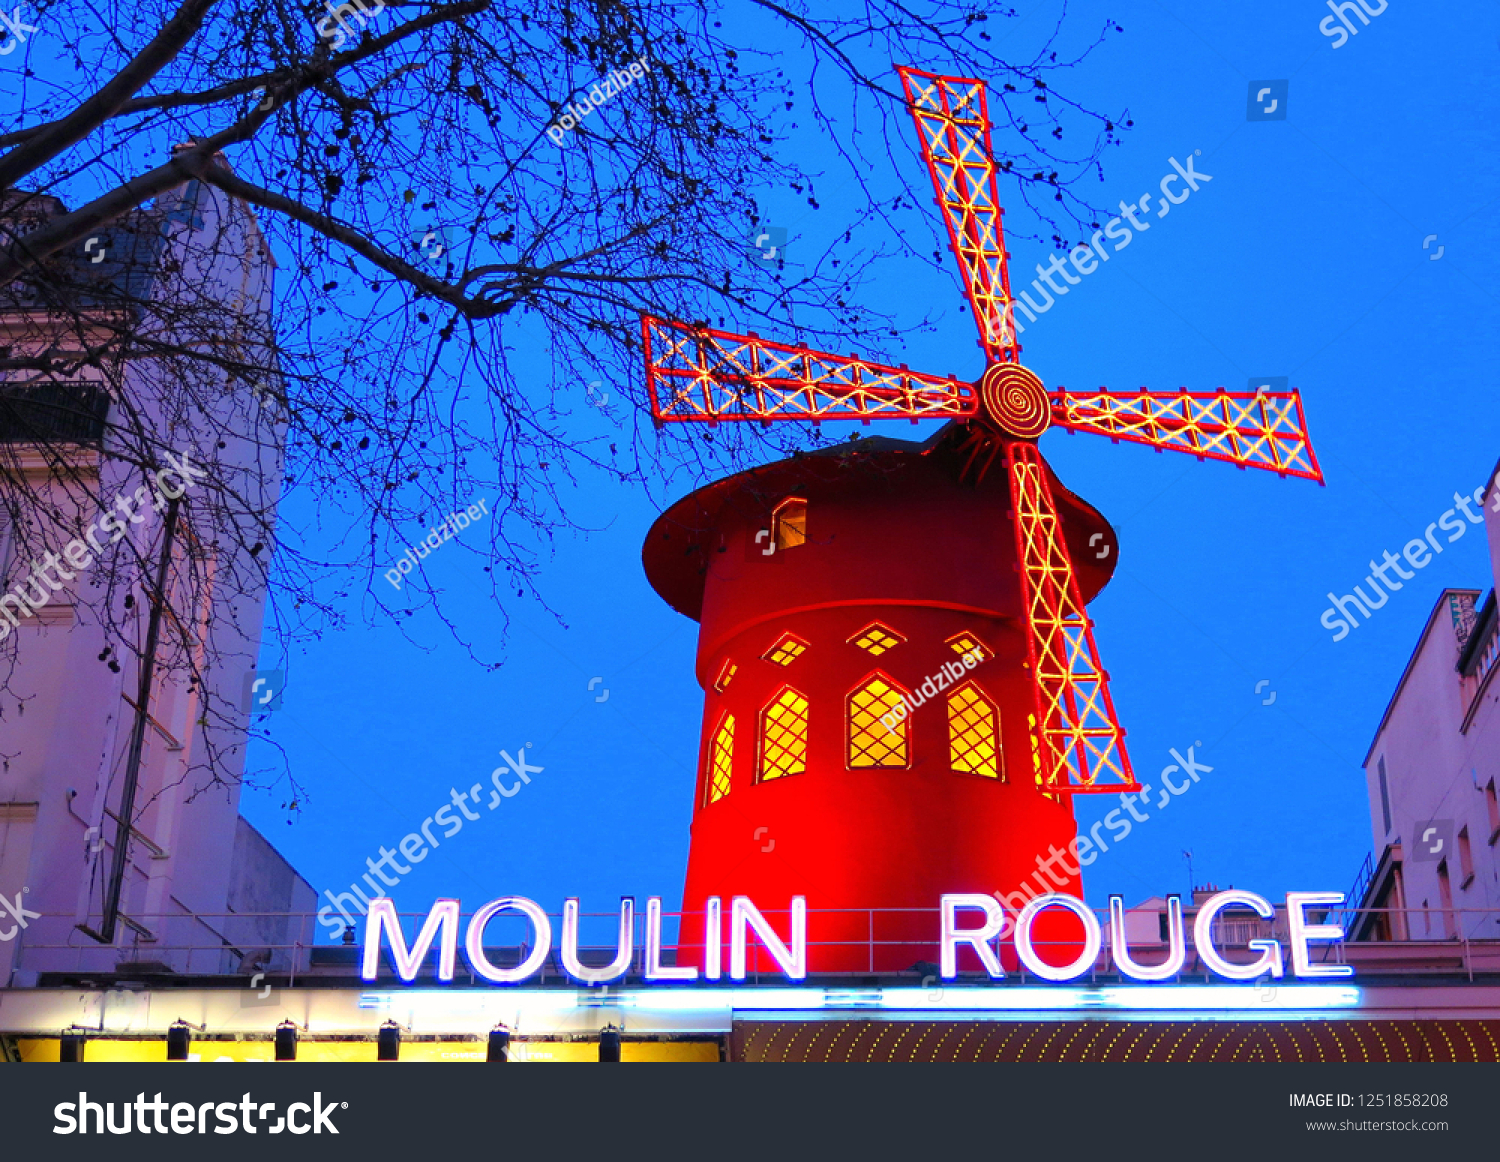 PARIS The Moulin Rouge on  blue hour 20.02.2016. in Paris, France. Picturesque Old facade building of famous cabaret built in 1889, locating in the Paris red-light district Pigalle